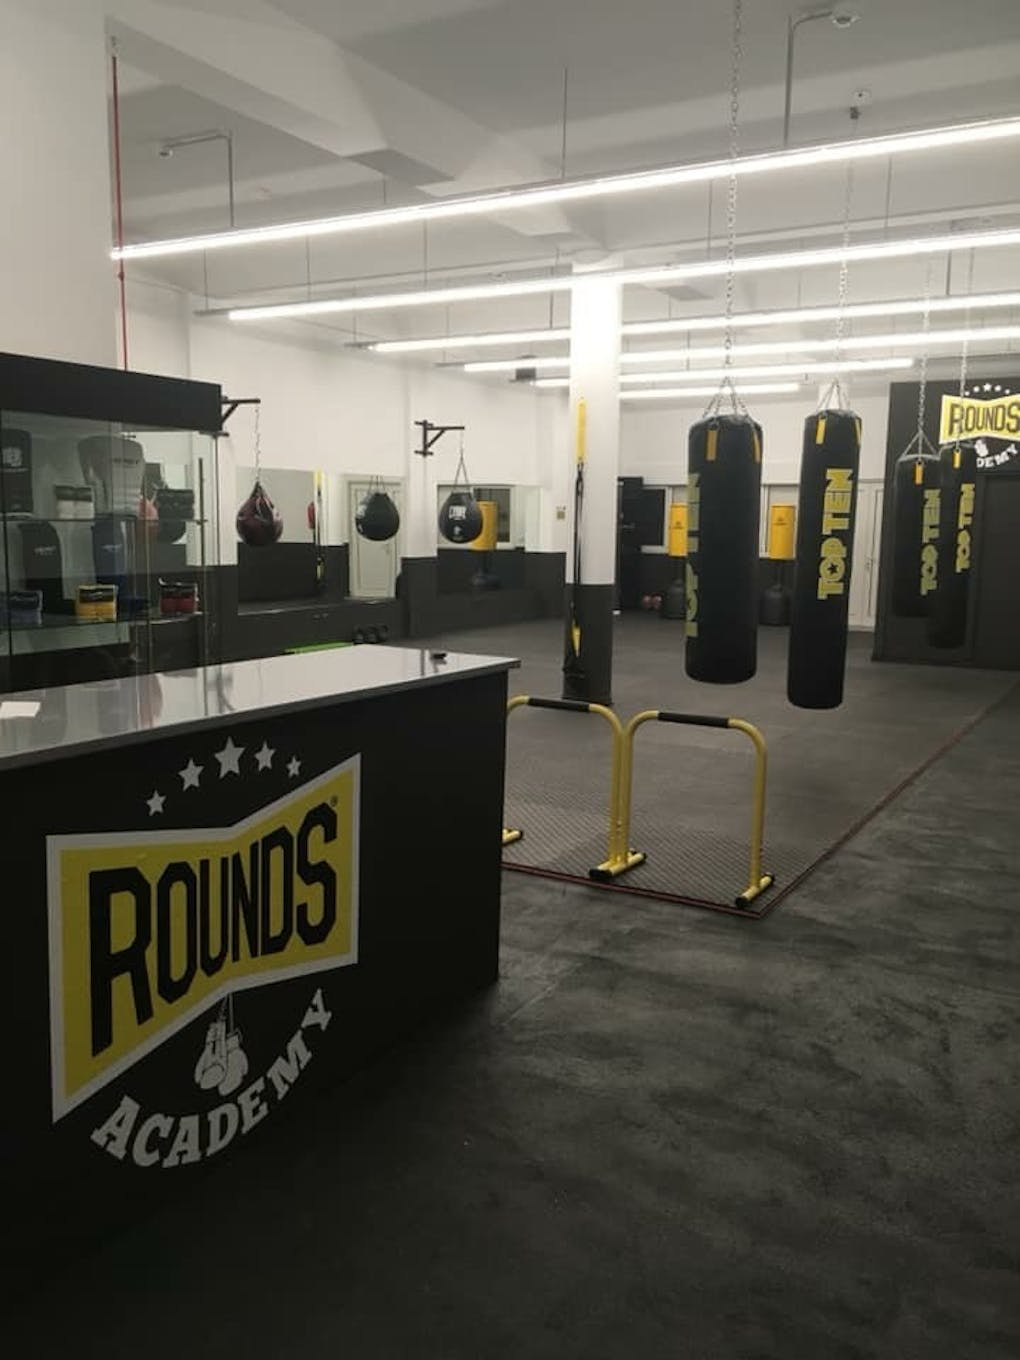 Rounds Academy Benfica